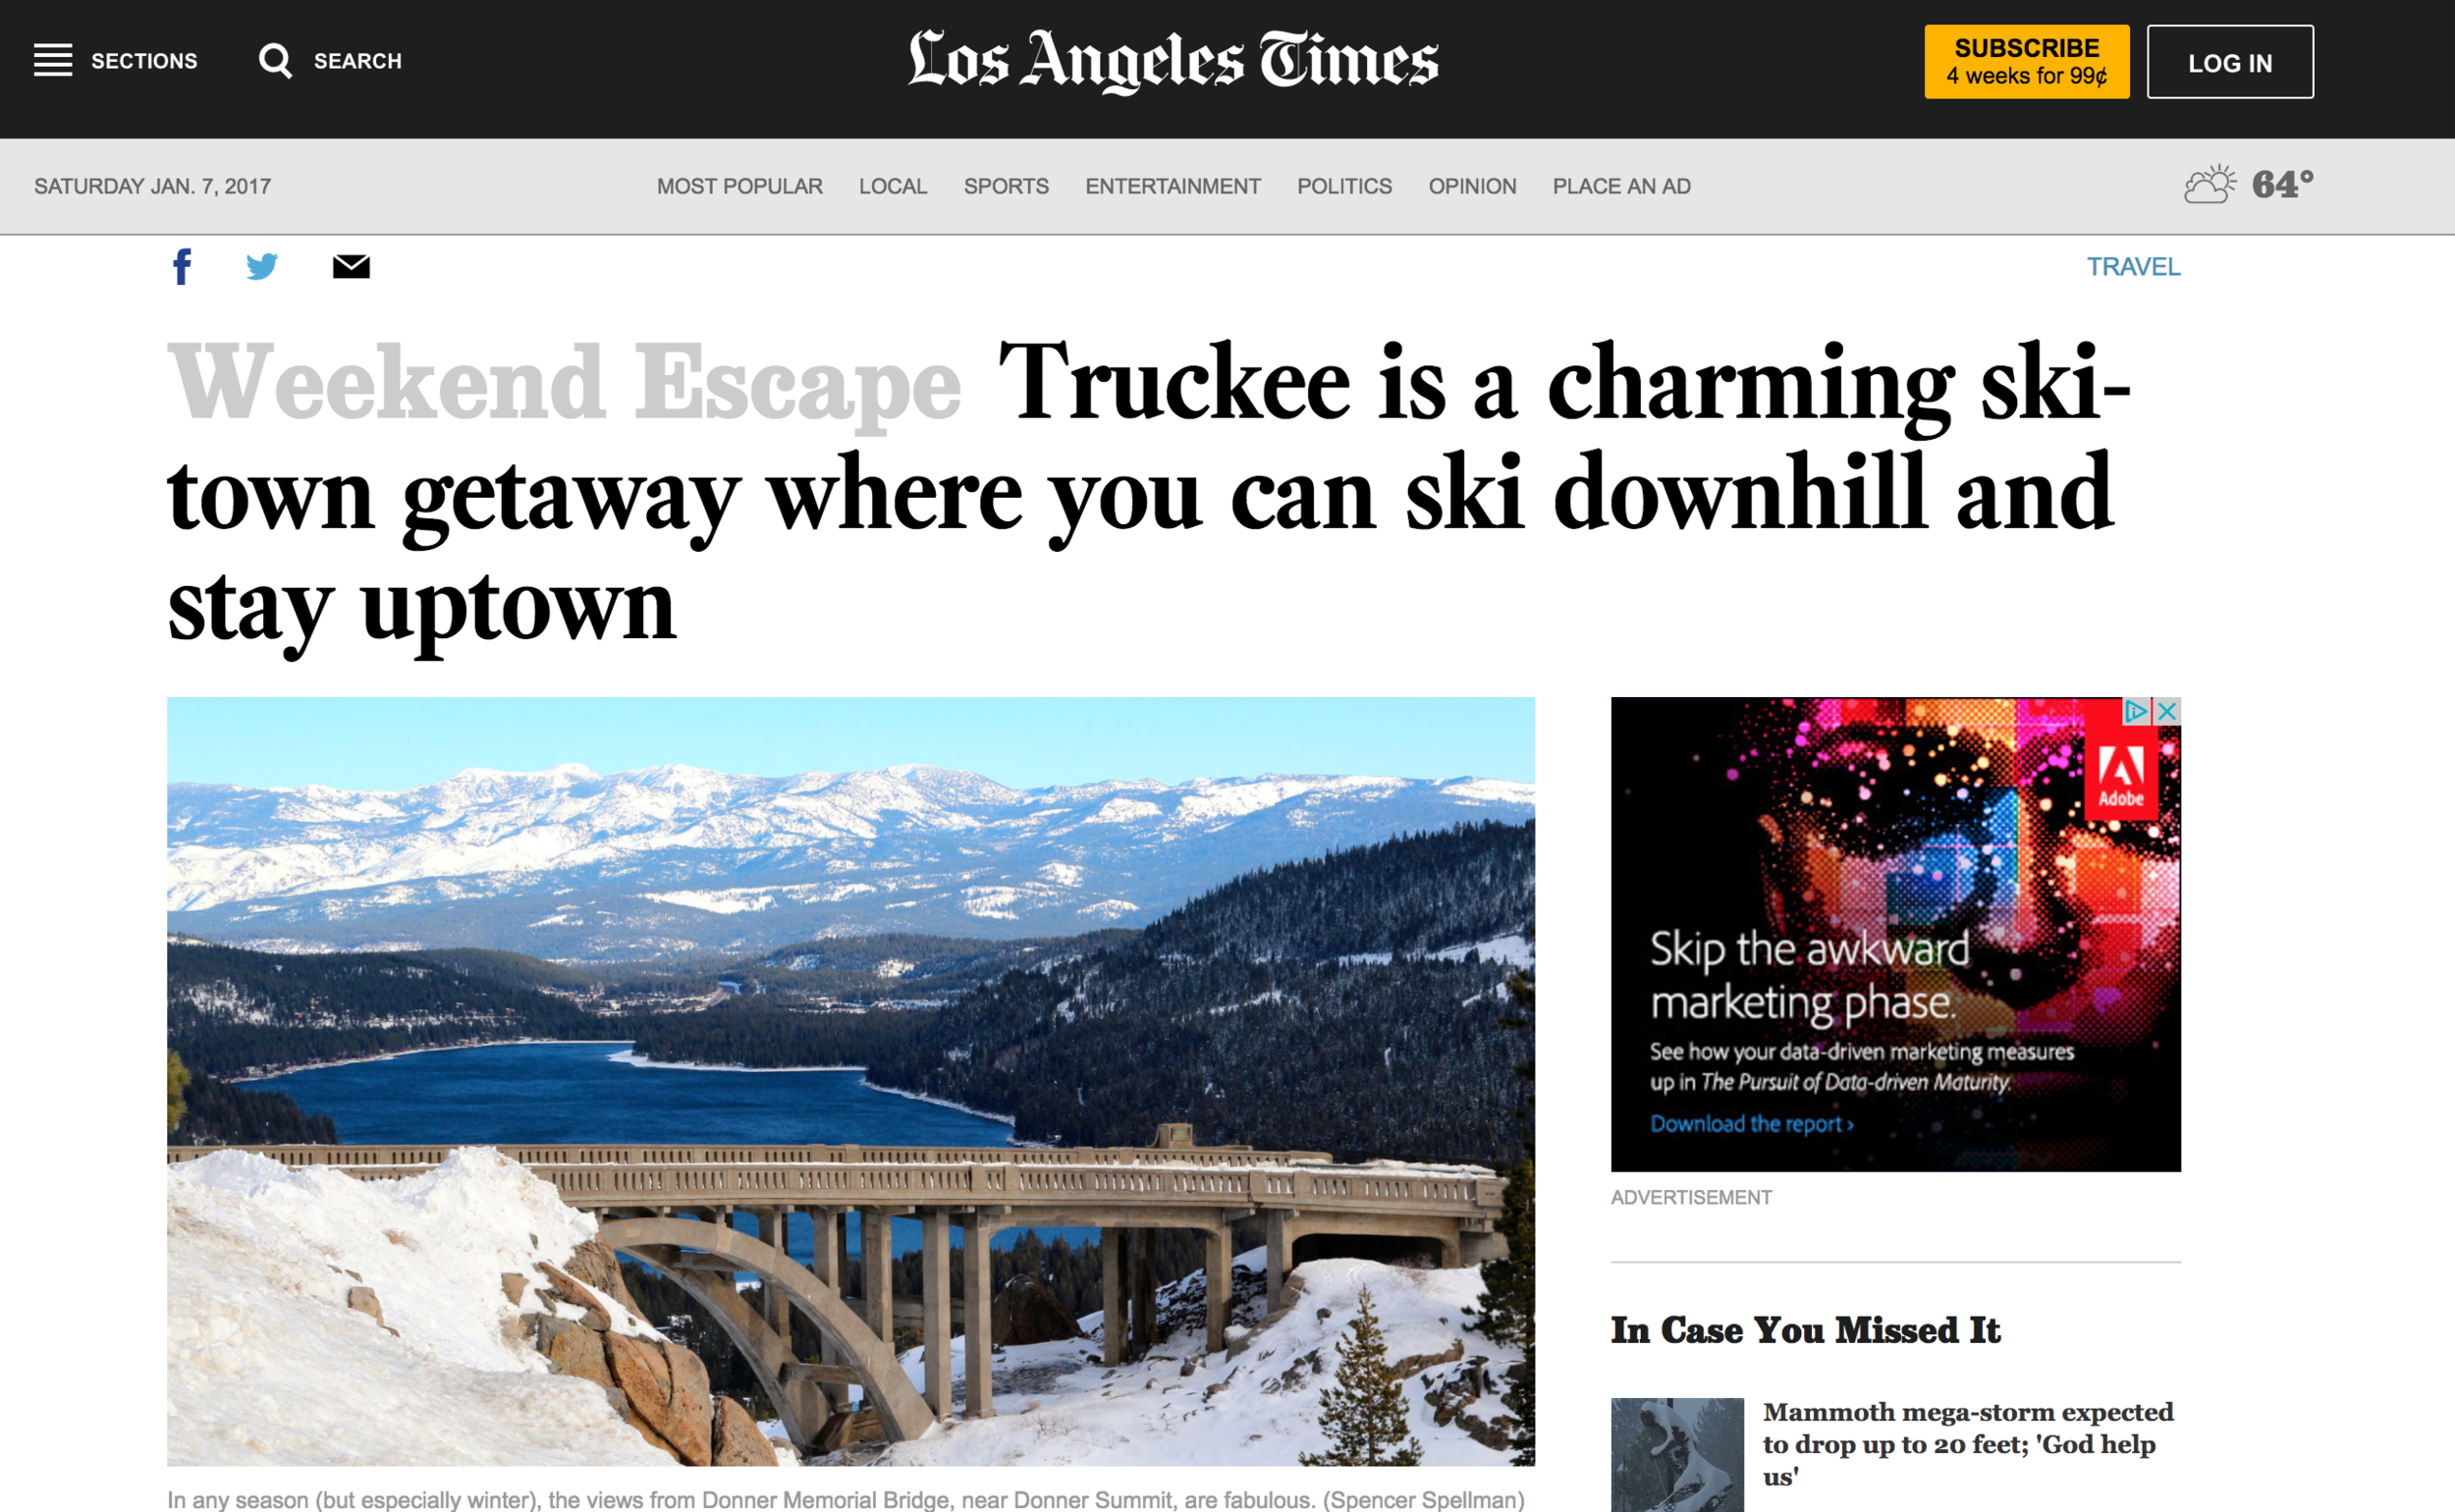 Los Angeles Times:Truckee is a charming ski-town getaway